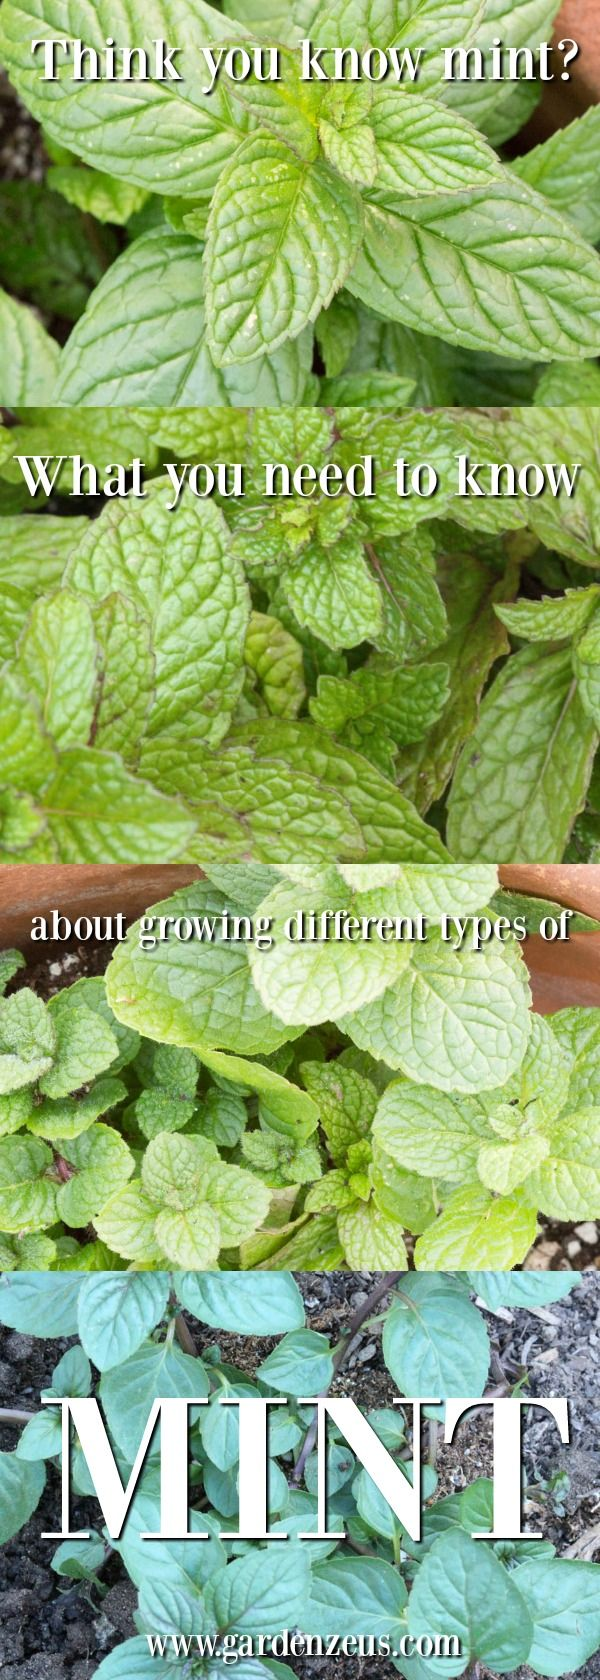 What to know about growing different types of mint #gardening #mint